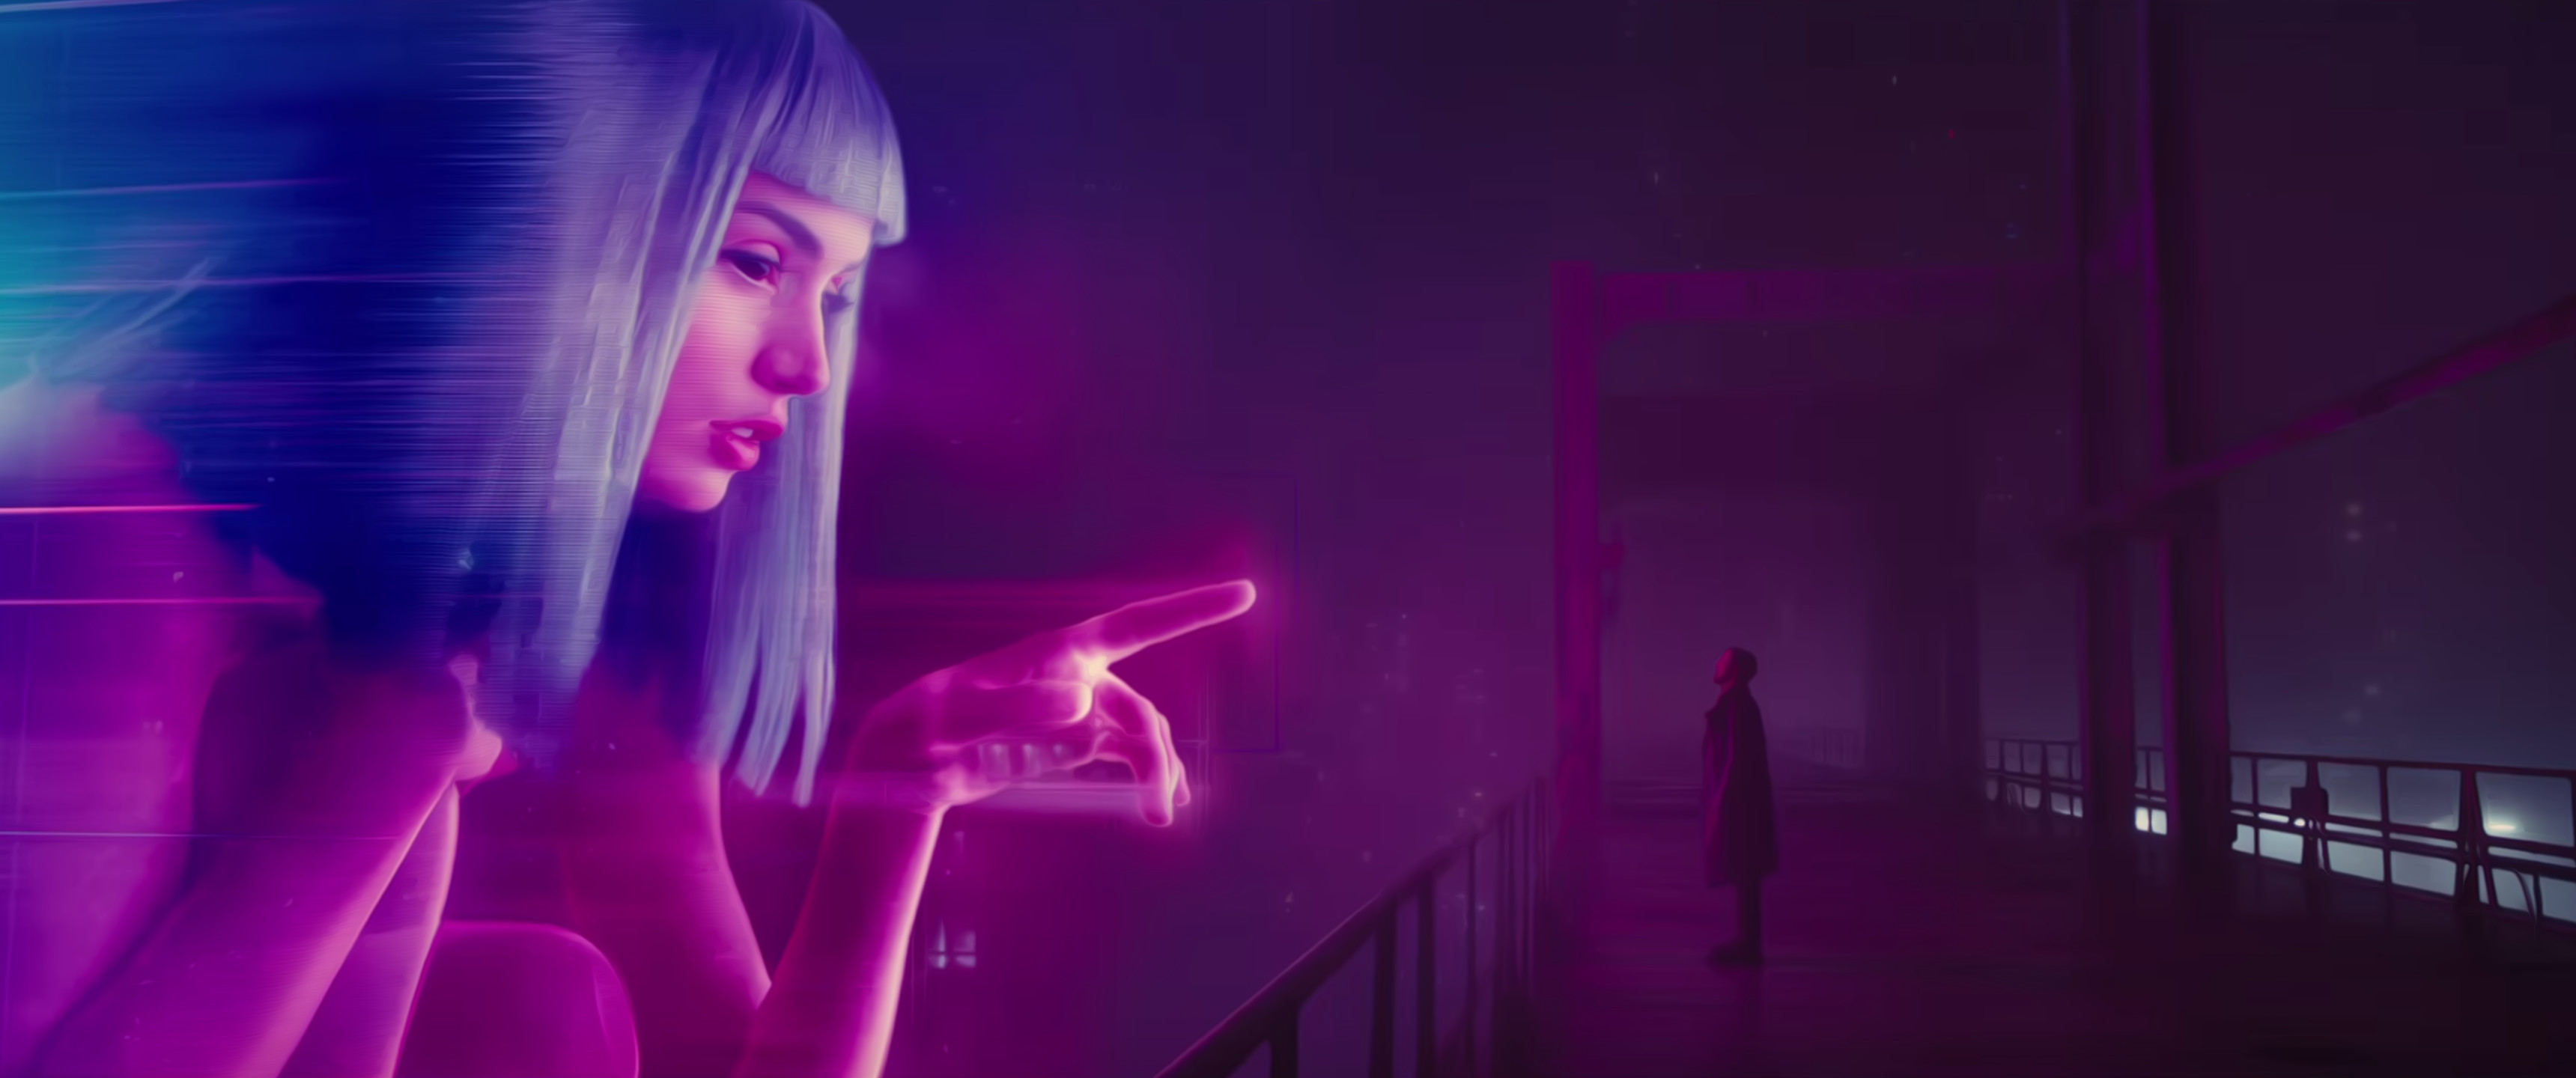 Res: 3440x1440, Blade Runner 2049 Wallpapers 4 - 3440 X 1440